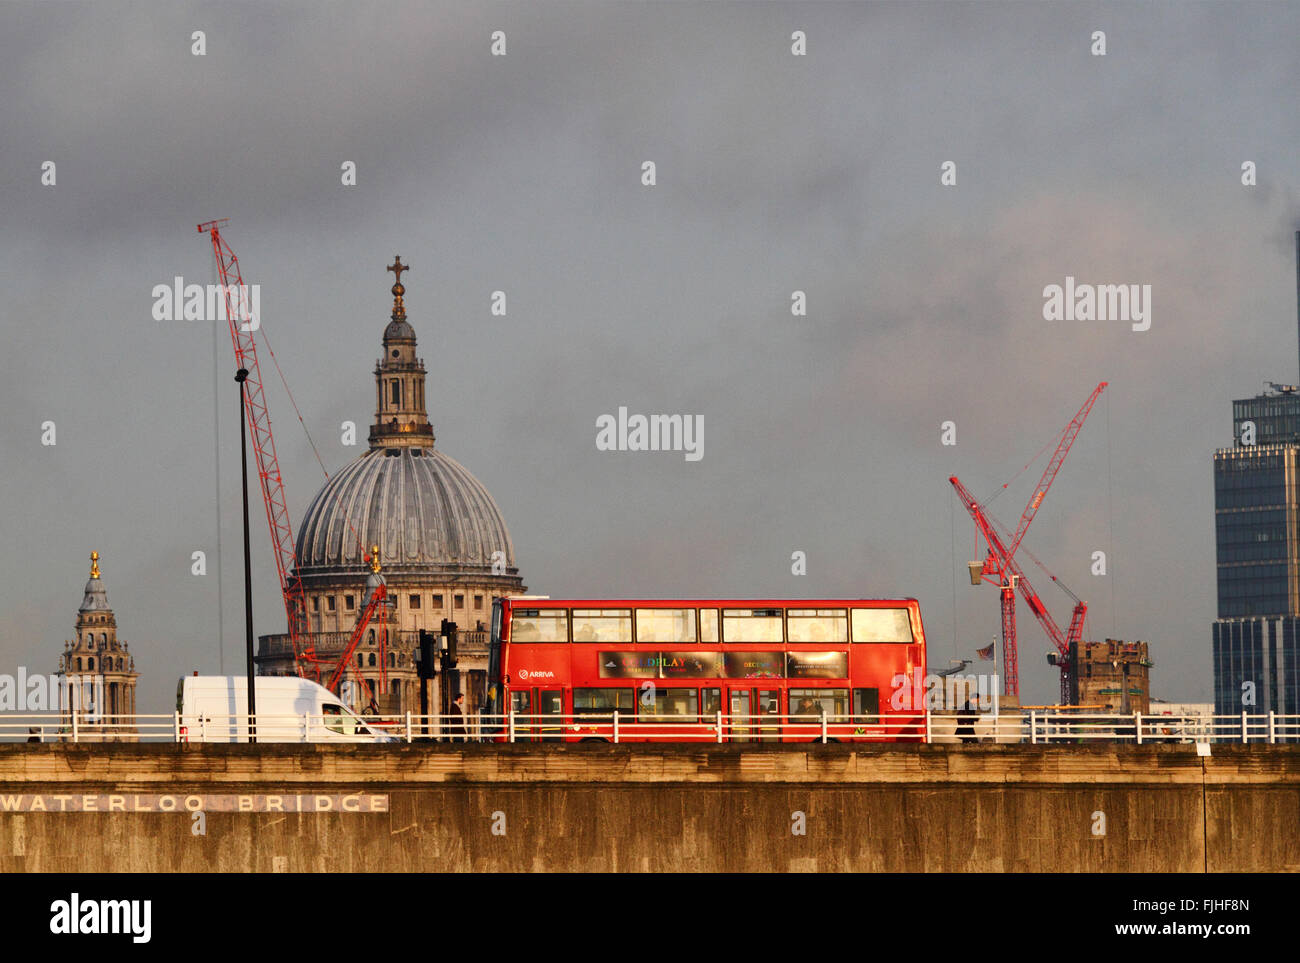 Red double deck bus crossing Waterloo Bridge, St Paul's Cathedral dome in background, London, England. - Stock Image